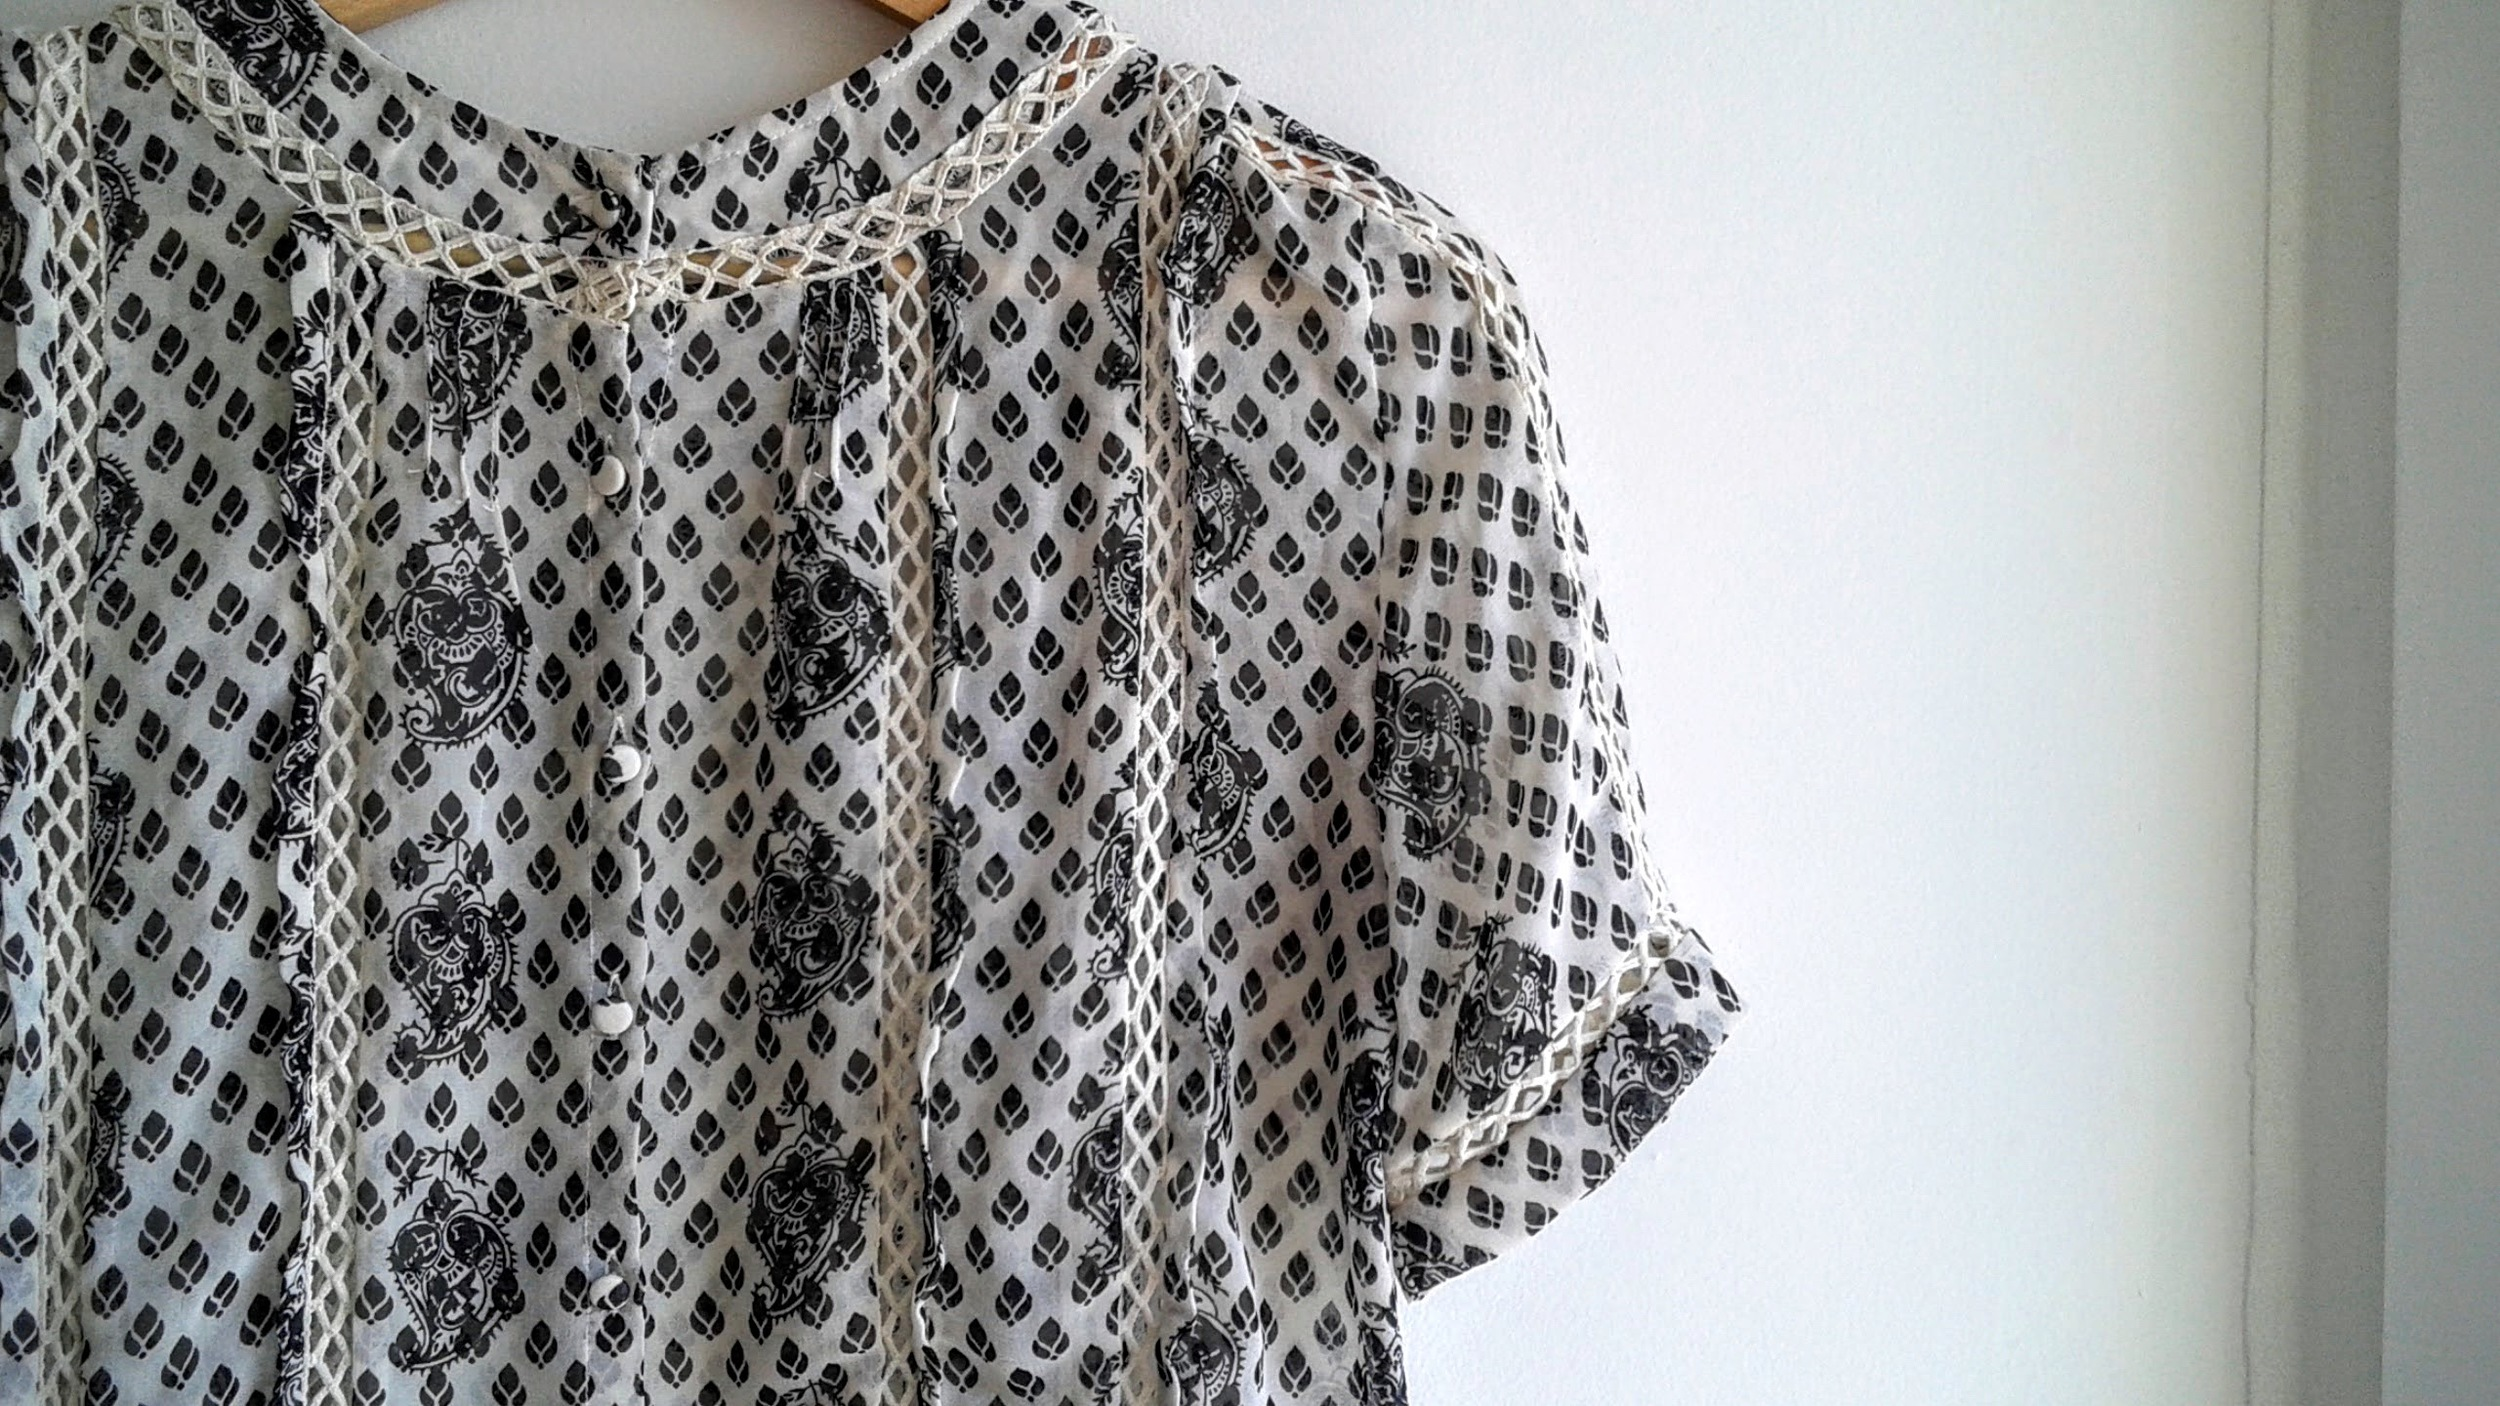 Can you see the wee buttons? They make the blouse!